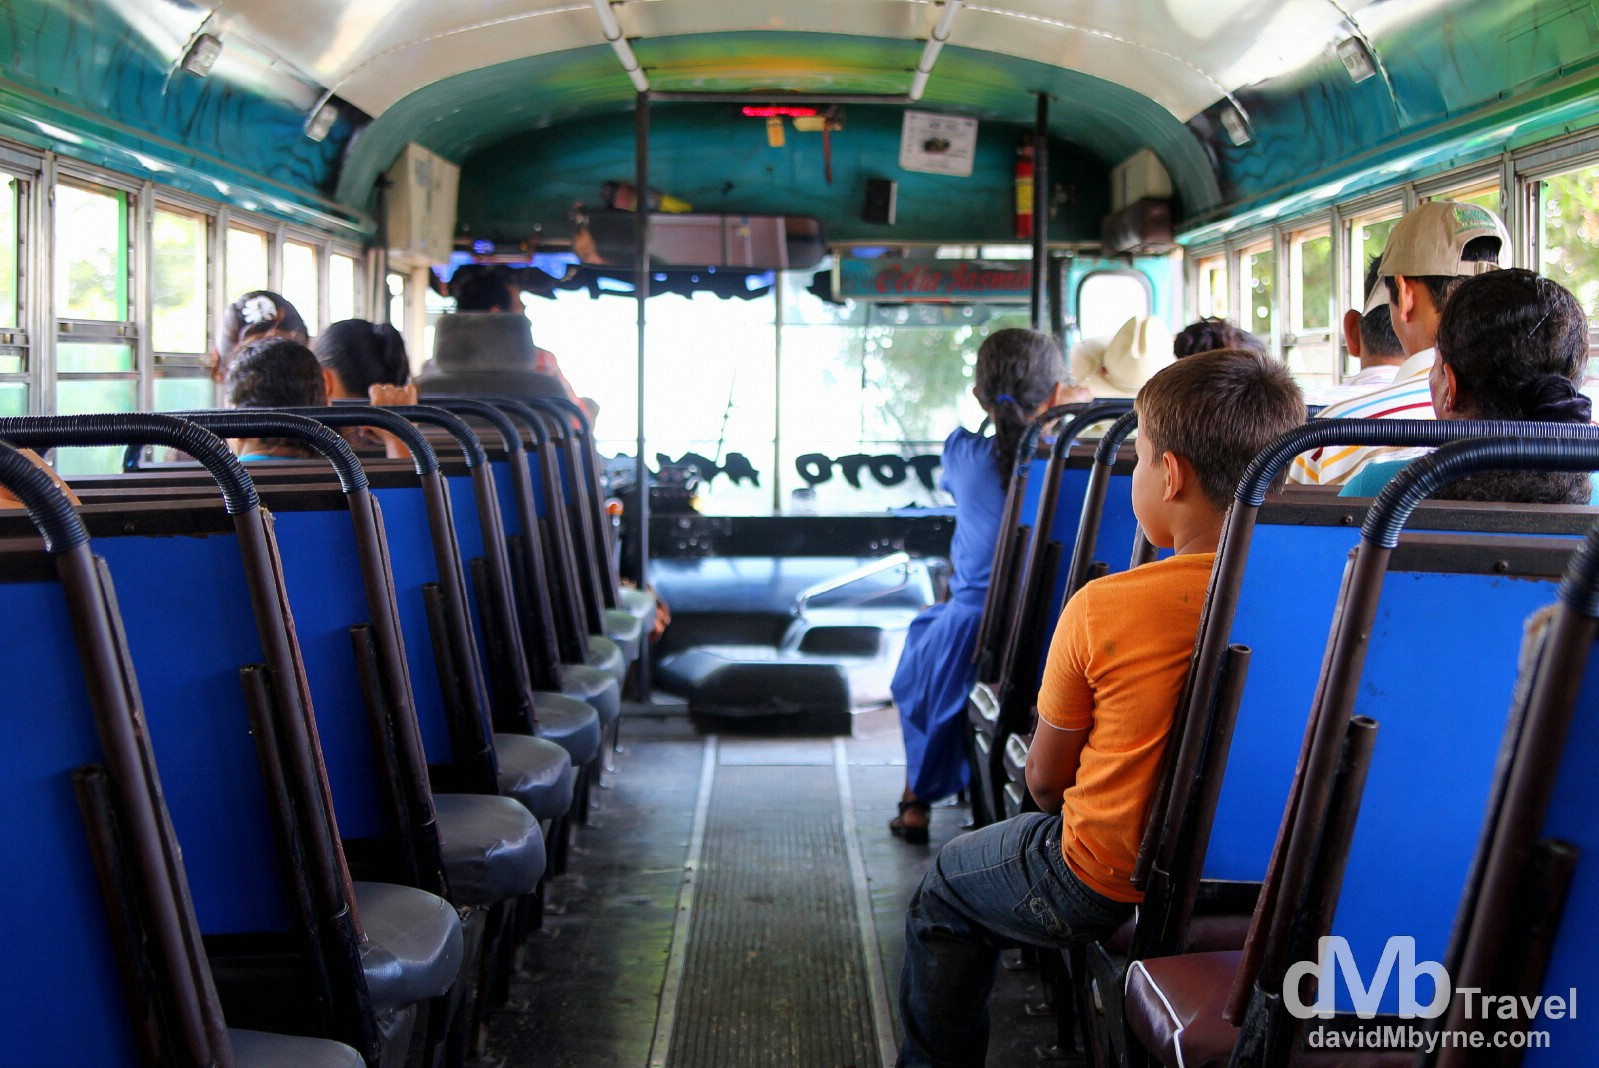 On the unusually quiet chicken bus from Suchitoto to Las Aguilares, El Salvador. This was the first of today's buses. It didn't get much busier than this which, for me, was very unusual. I sat down the back taking pictures. I was in heaven. June 5th 2013.